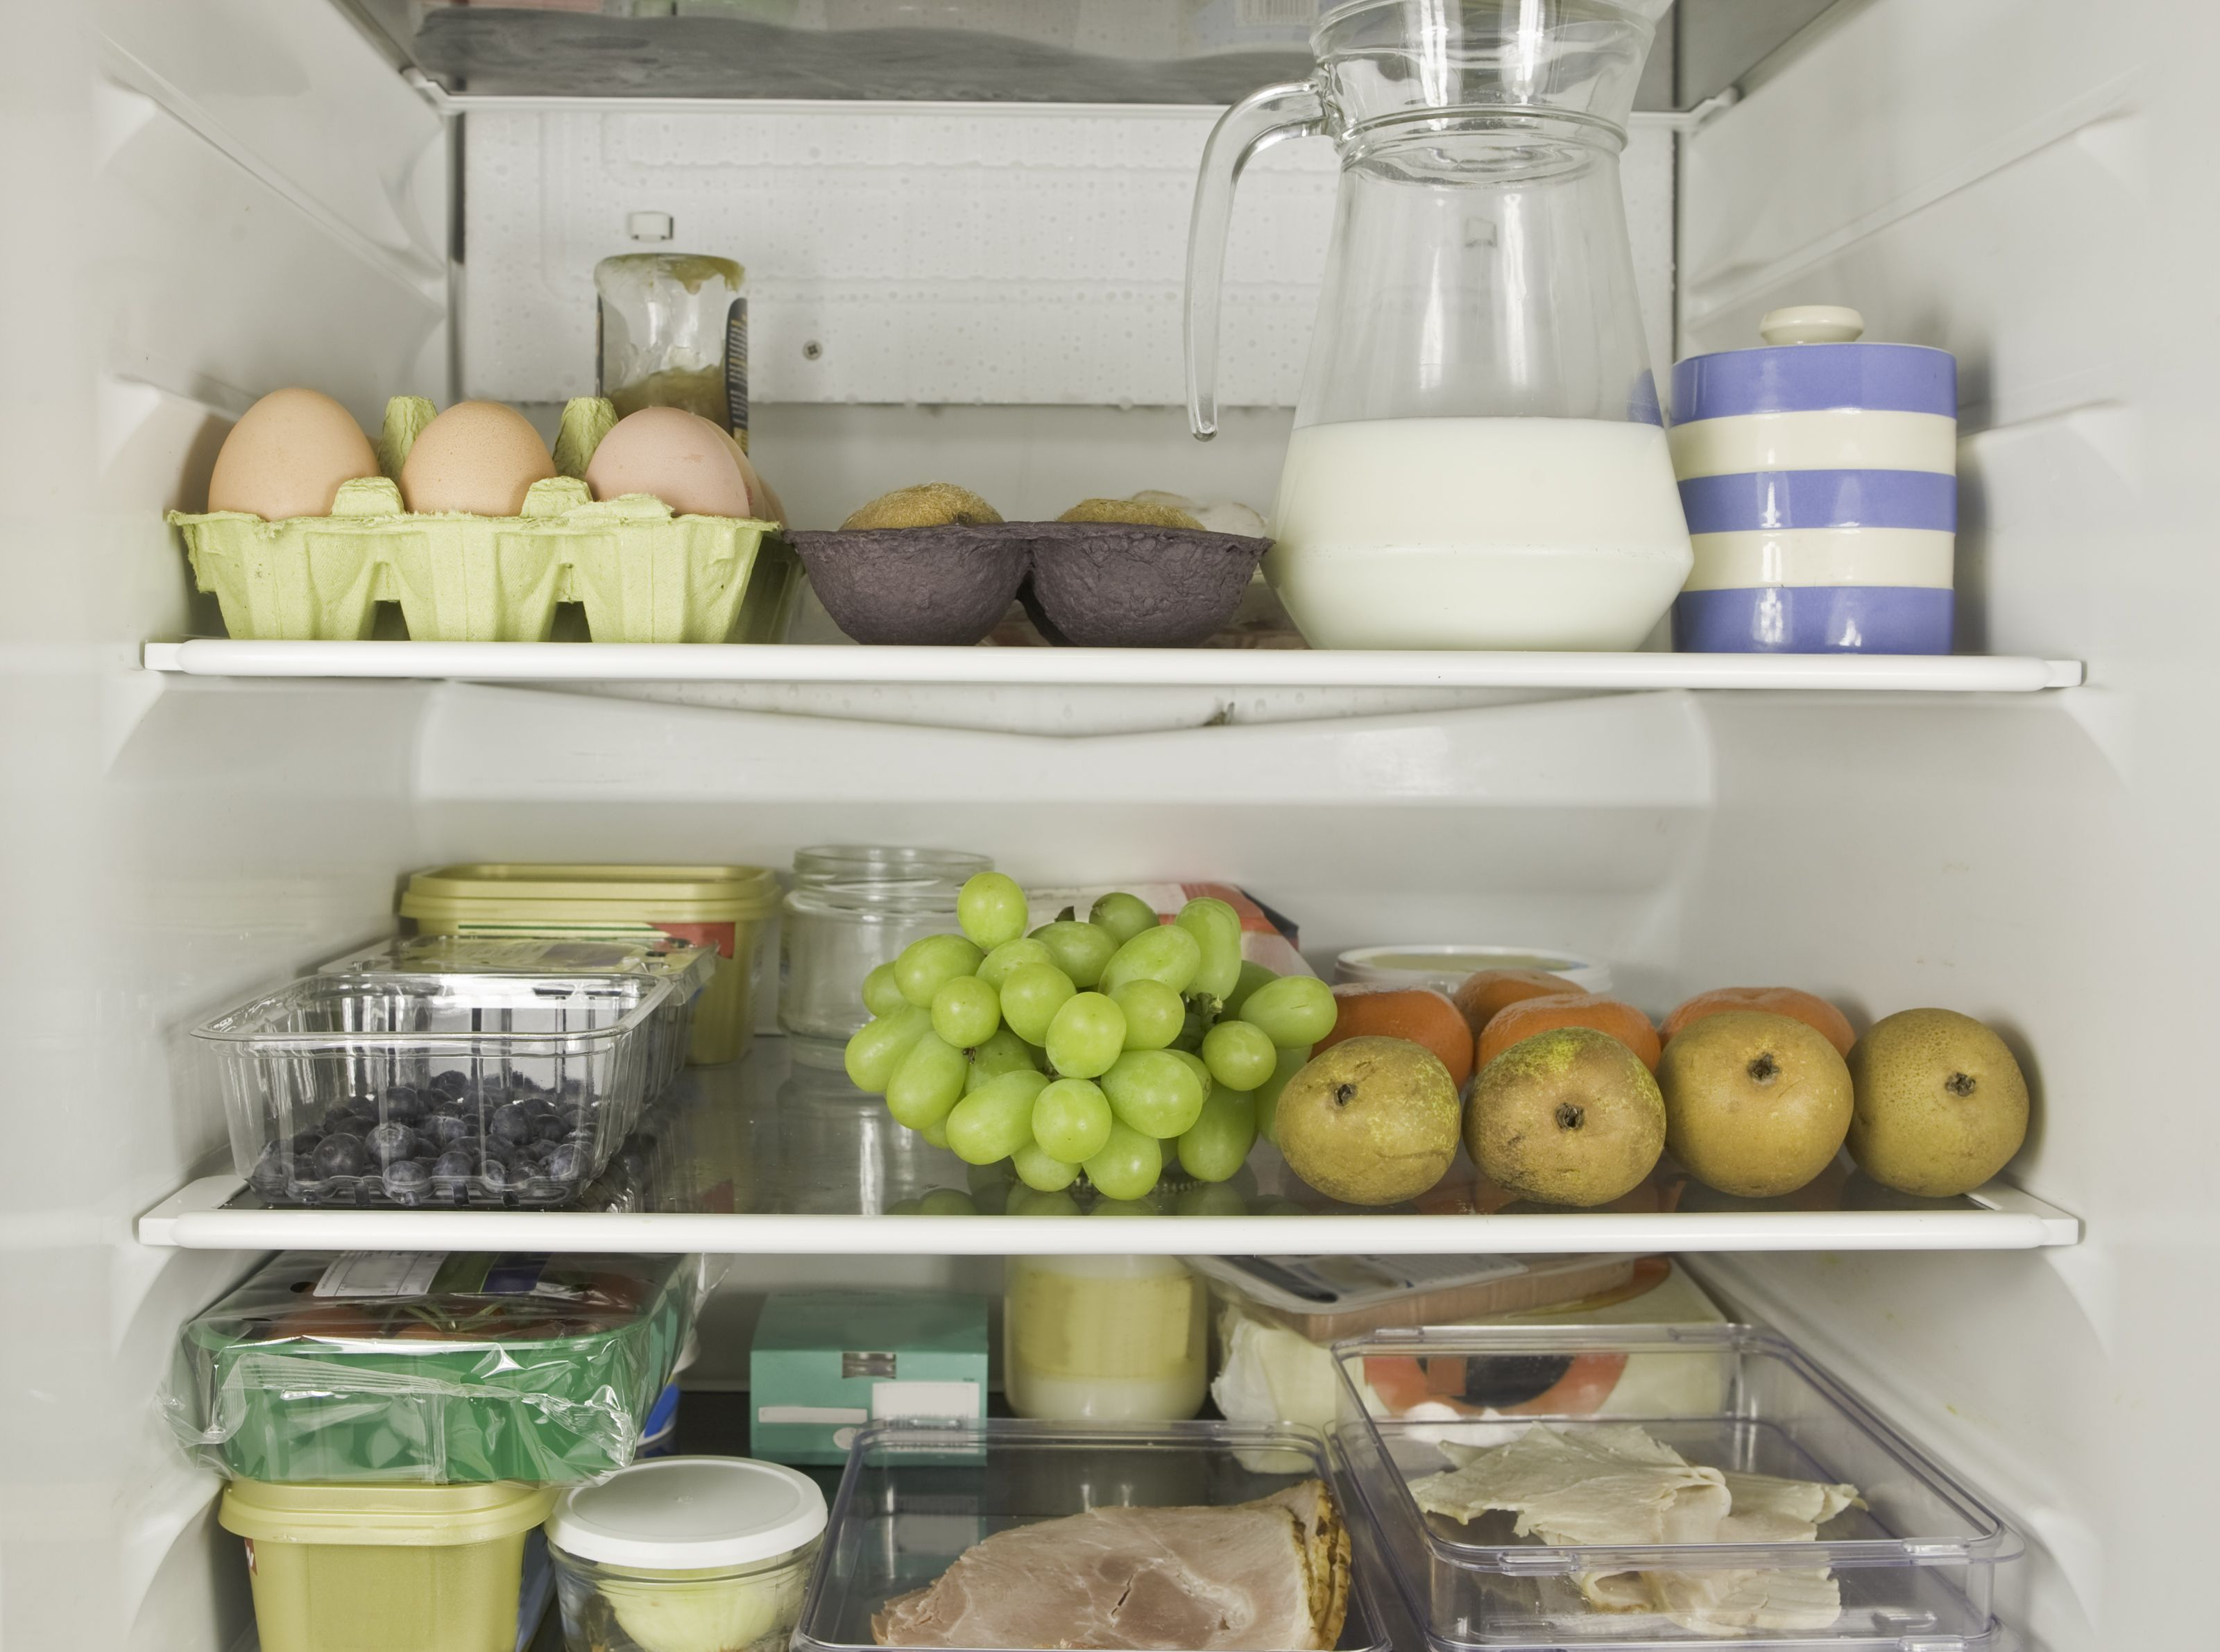 Learn how to store your food better so it doesn't go bad.